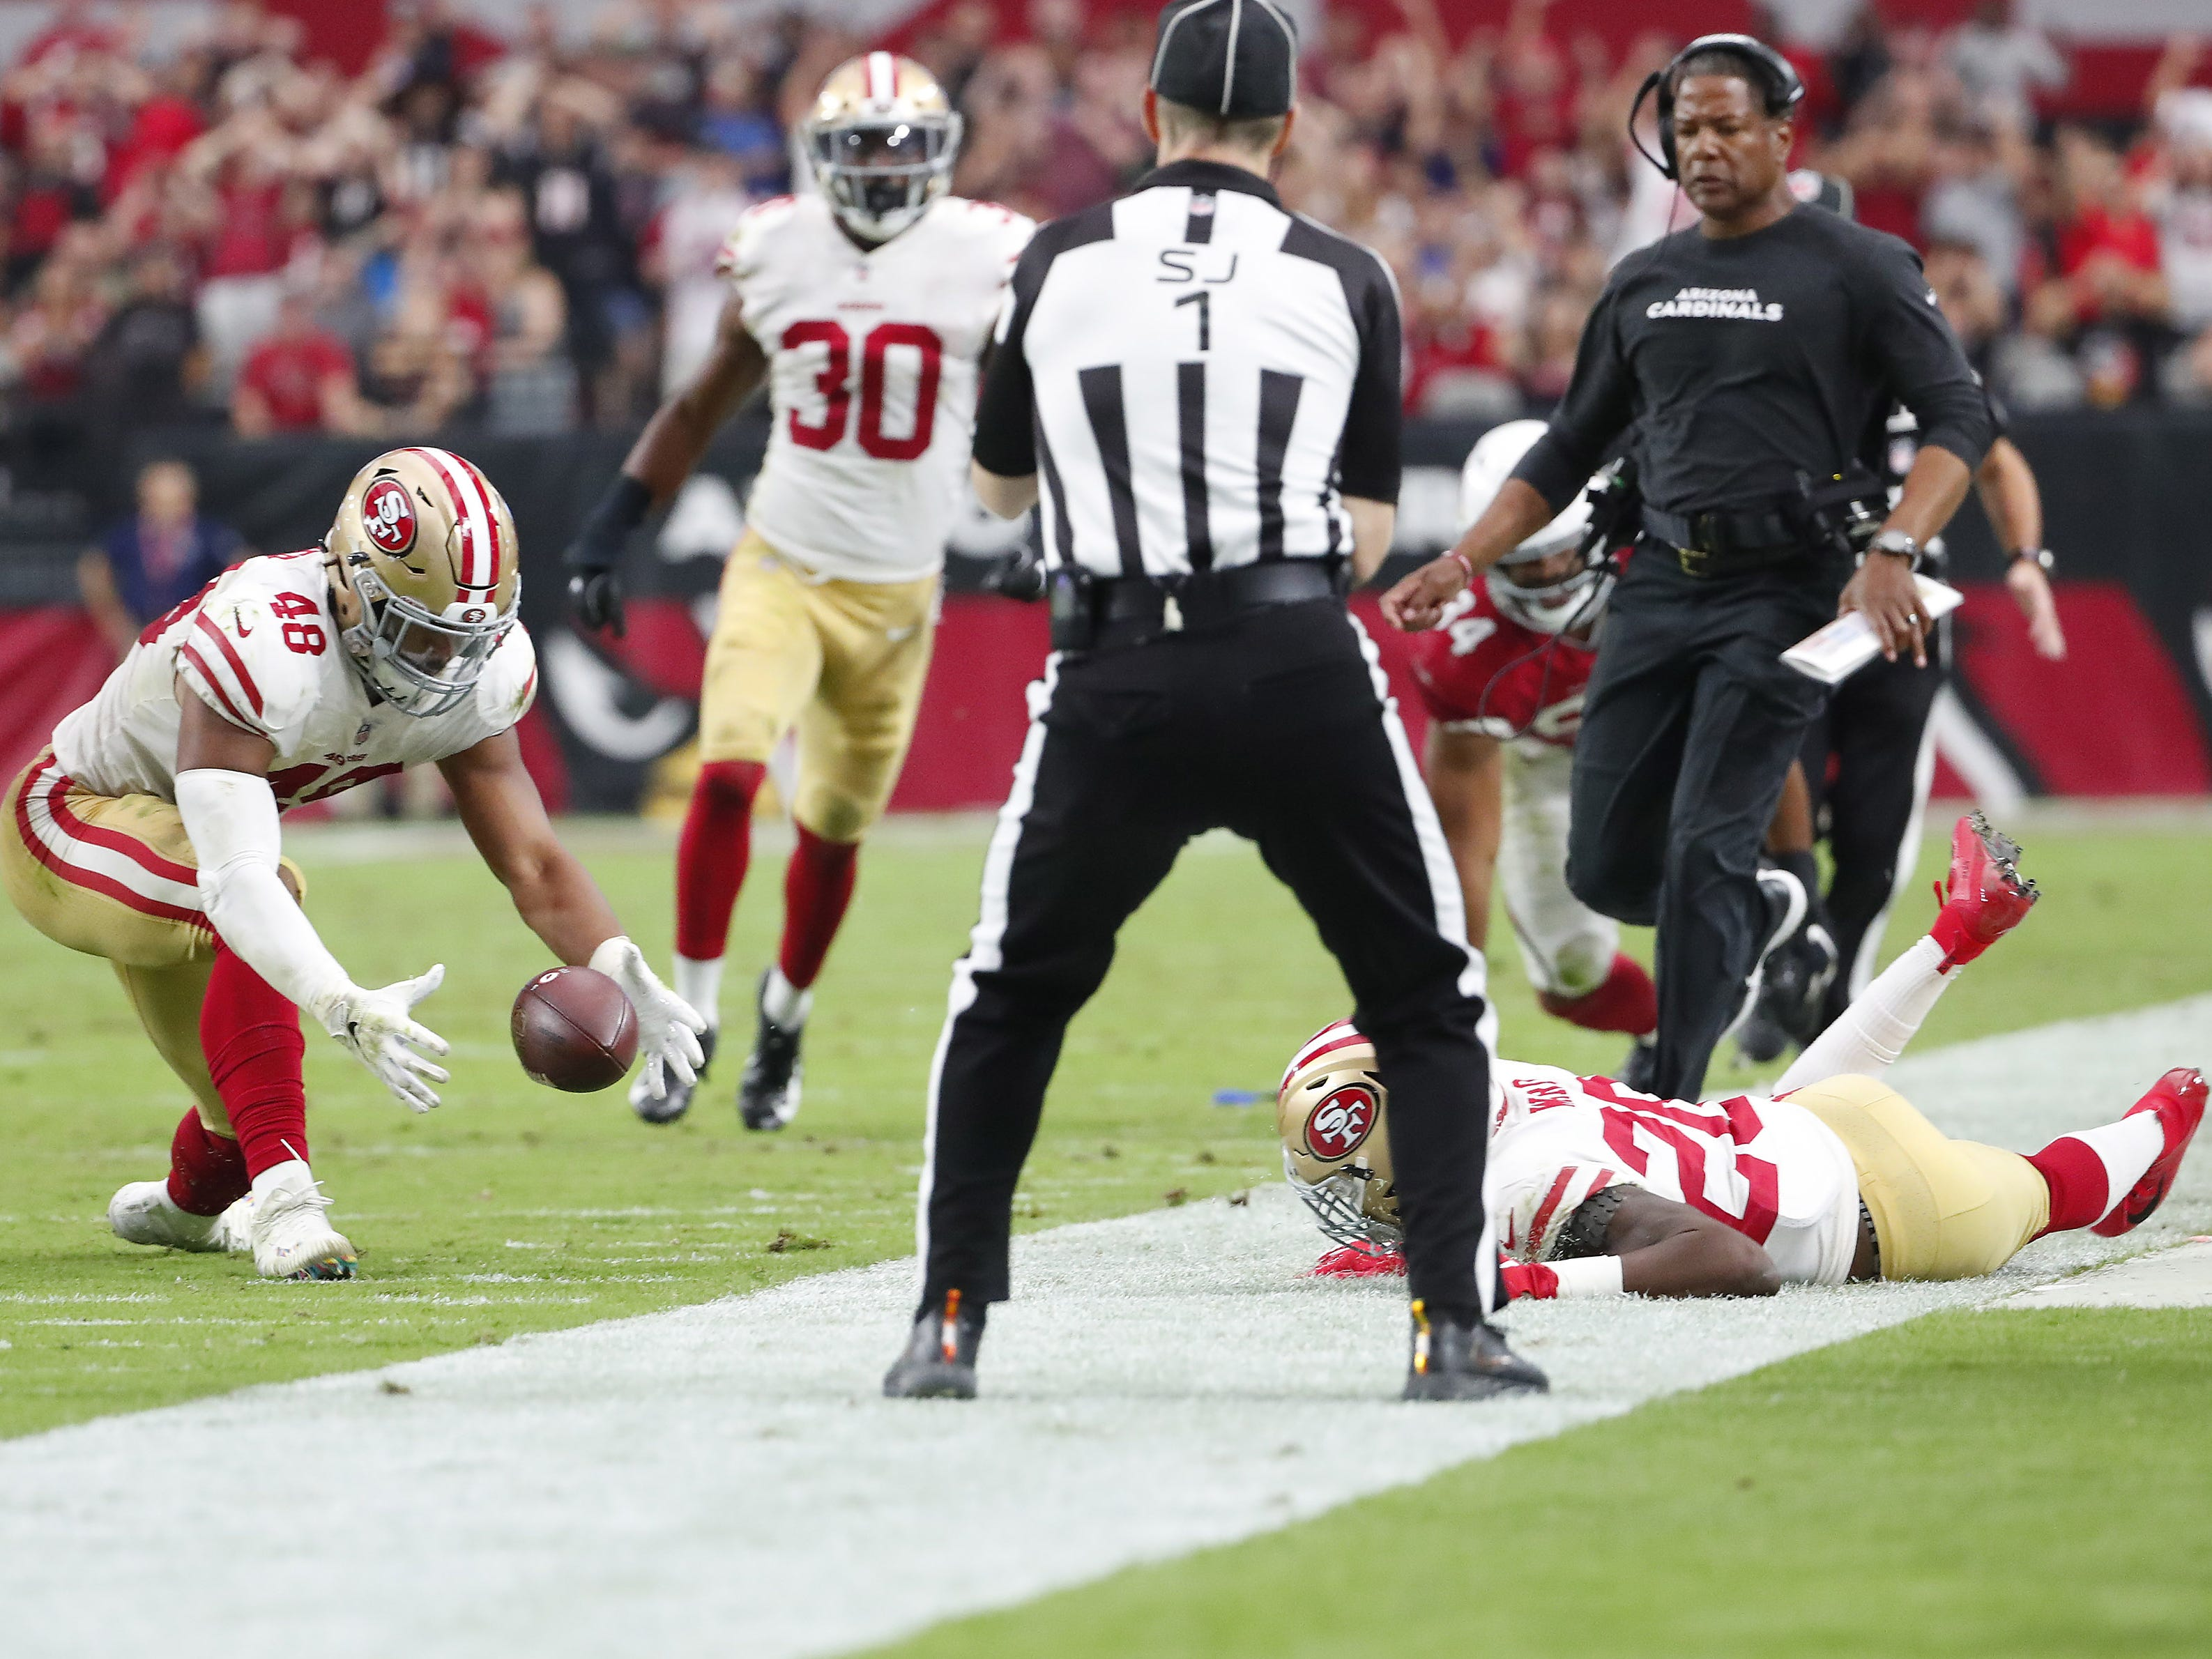 San Francisco 49ers linebacker Fred Warner (48) recovers a fumble against the Arizona Cardinals in the fourth quarter during NFL action on Oct. 28 at State Farm Stadium.